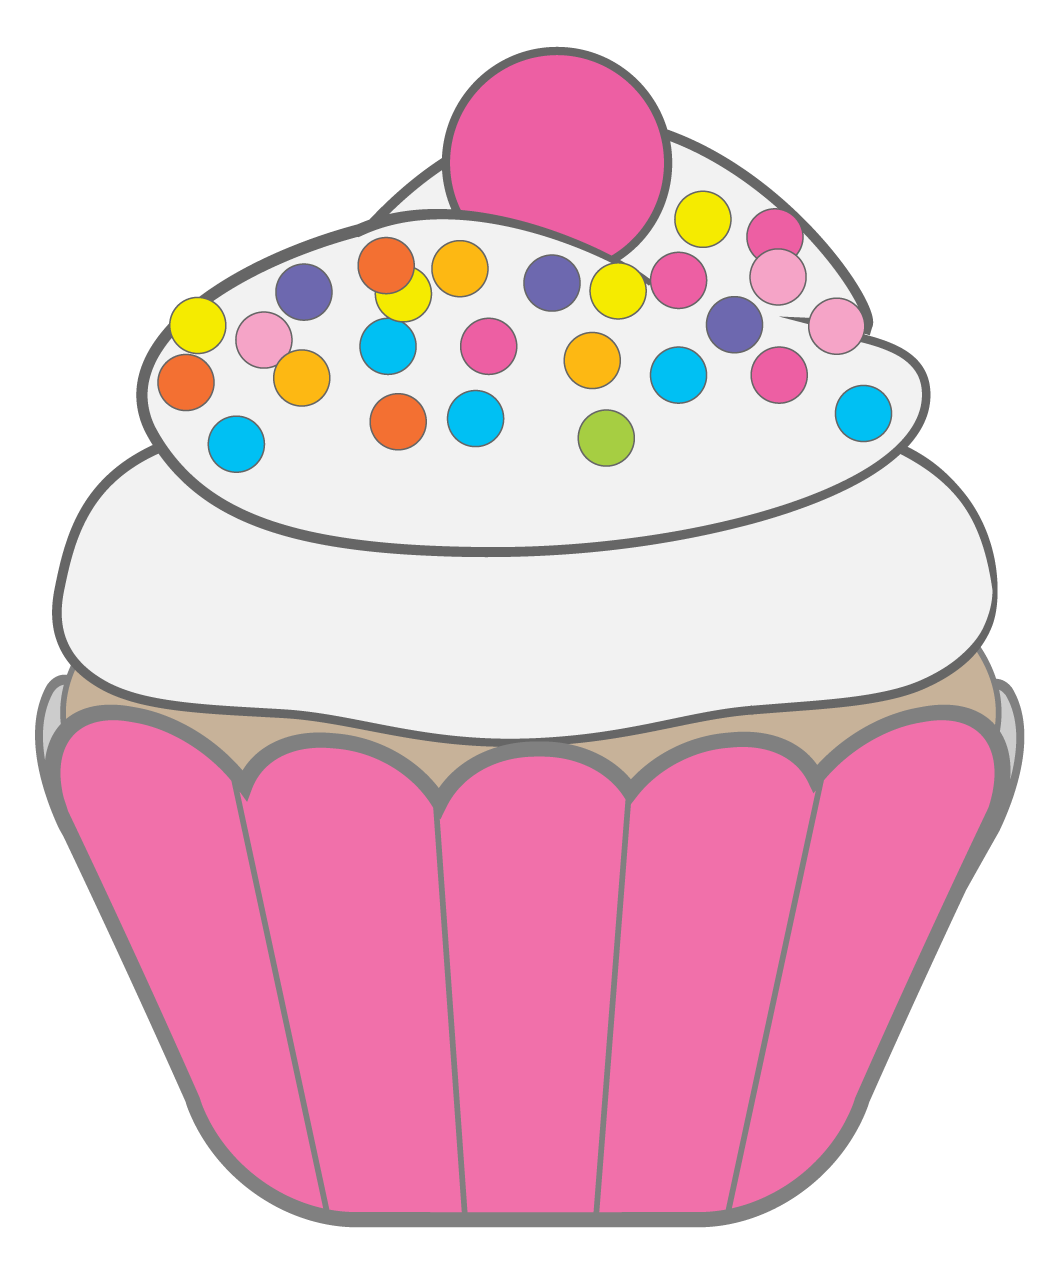 hight resolution of free clipart cupcakes